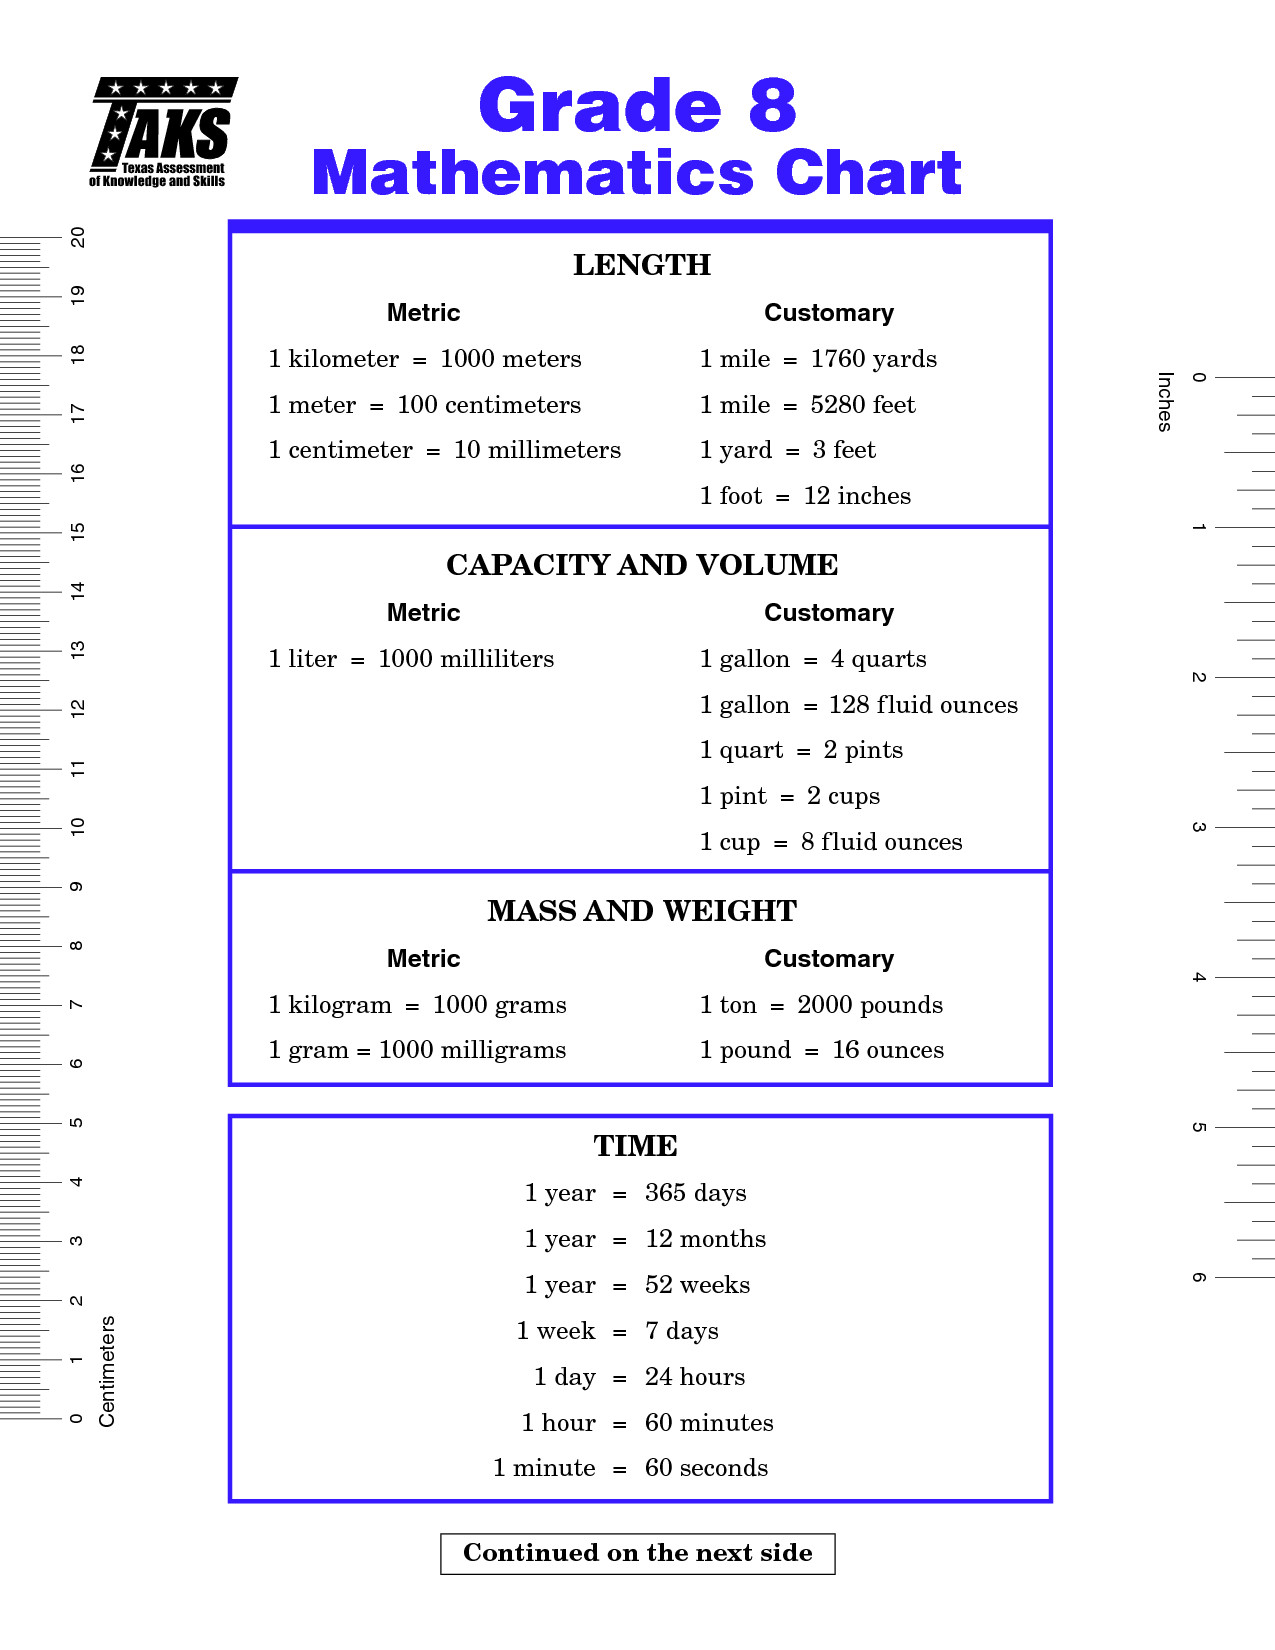 hight resolution of 5 Free Math Worksheets Second Grade 2 Measurement Metric Units Mass Kg Gm -  apocalomegaproductions.com